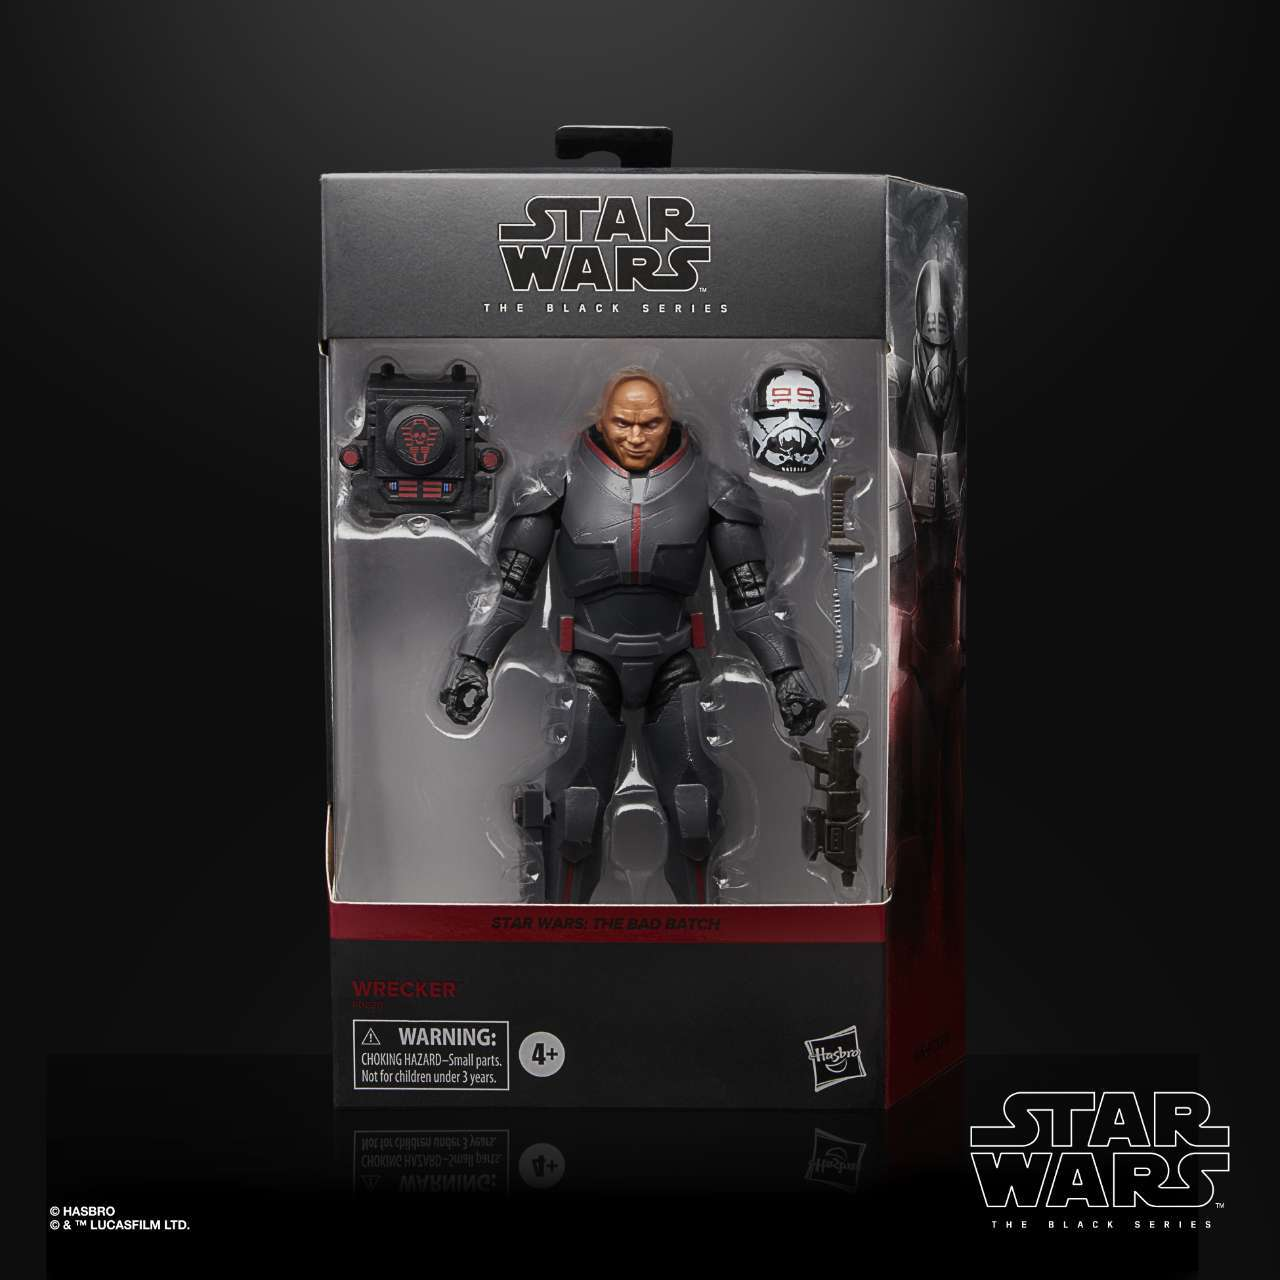 STAR WARS THE BLACK SERIES 6-INCH-SCALE WRECKER Figure - in pck (1)